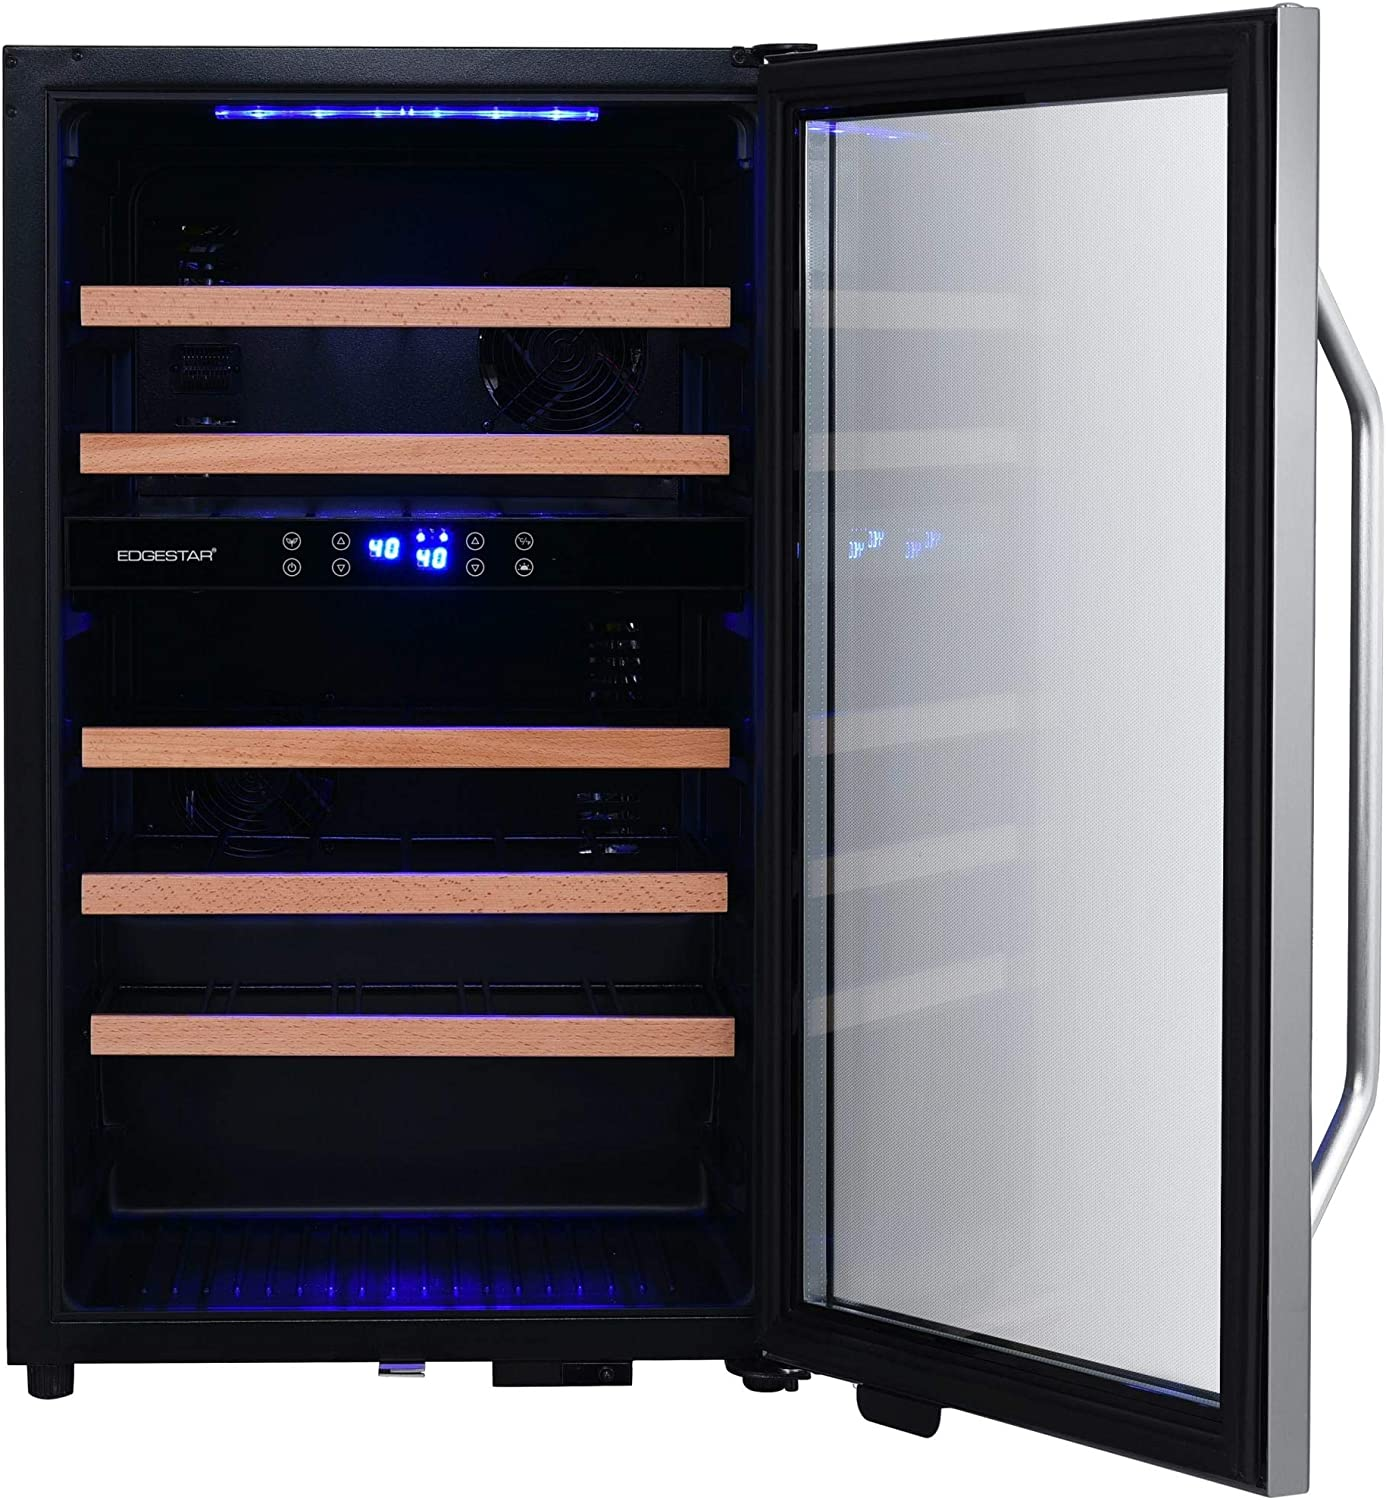 4. Ivation Premium Stainless Steel 18 Bottle Thermoelectric Wine Cooler